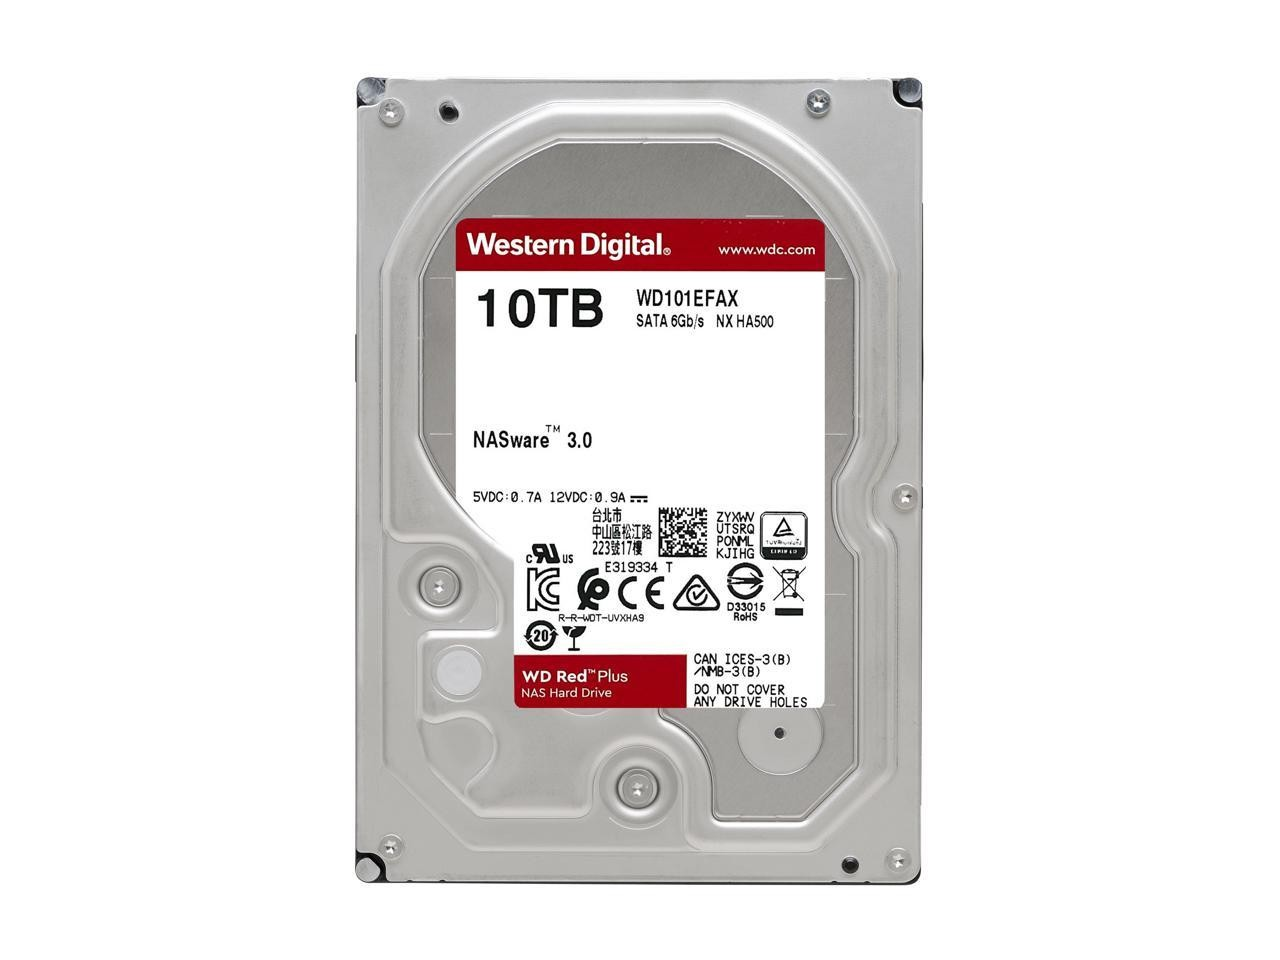 "Western Digital Hard Drive 3.5"" SATA 3.0 10TB 5400 256MB Red Plus NAS WD101EFAX"